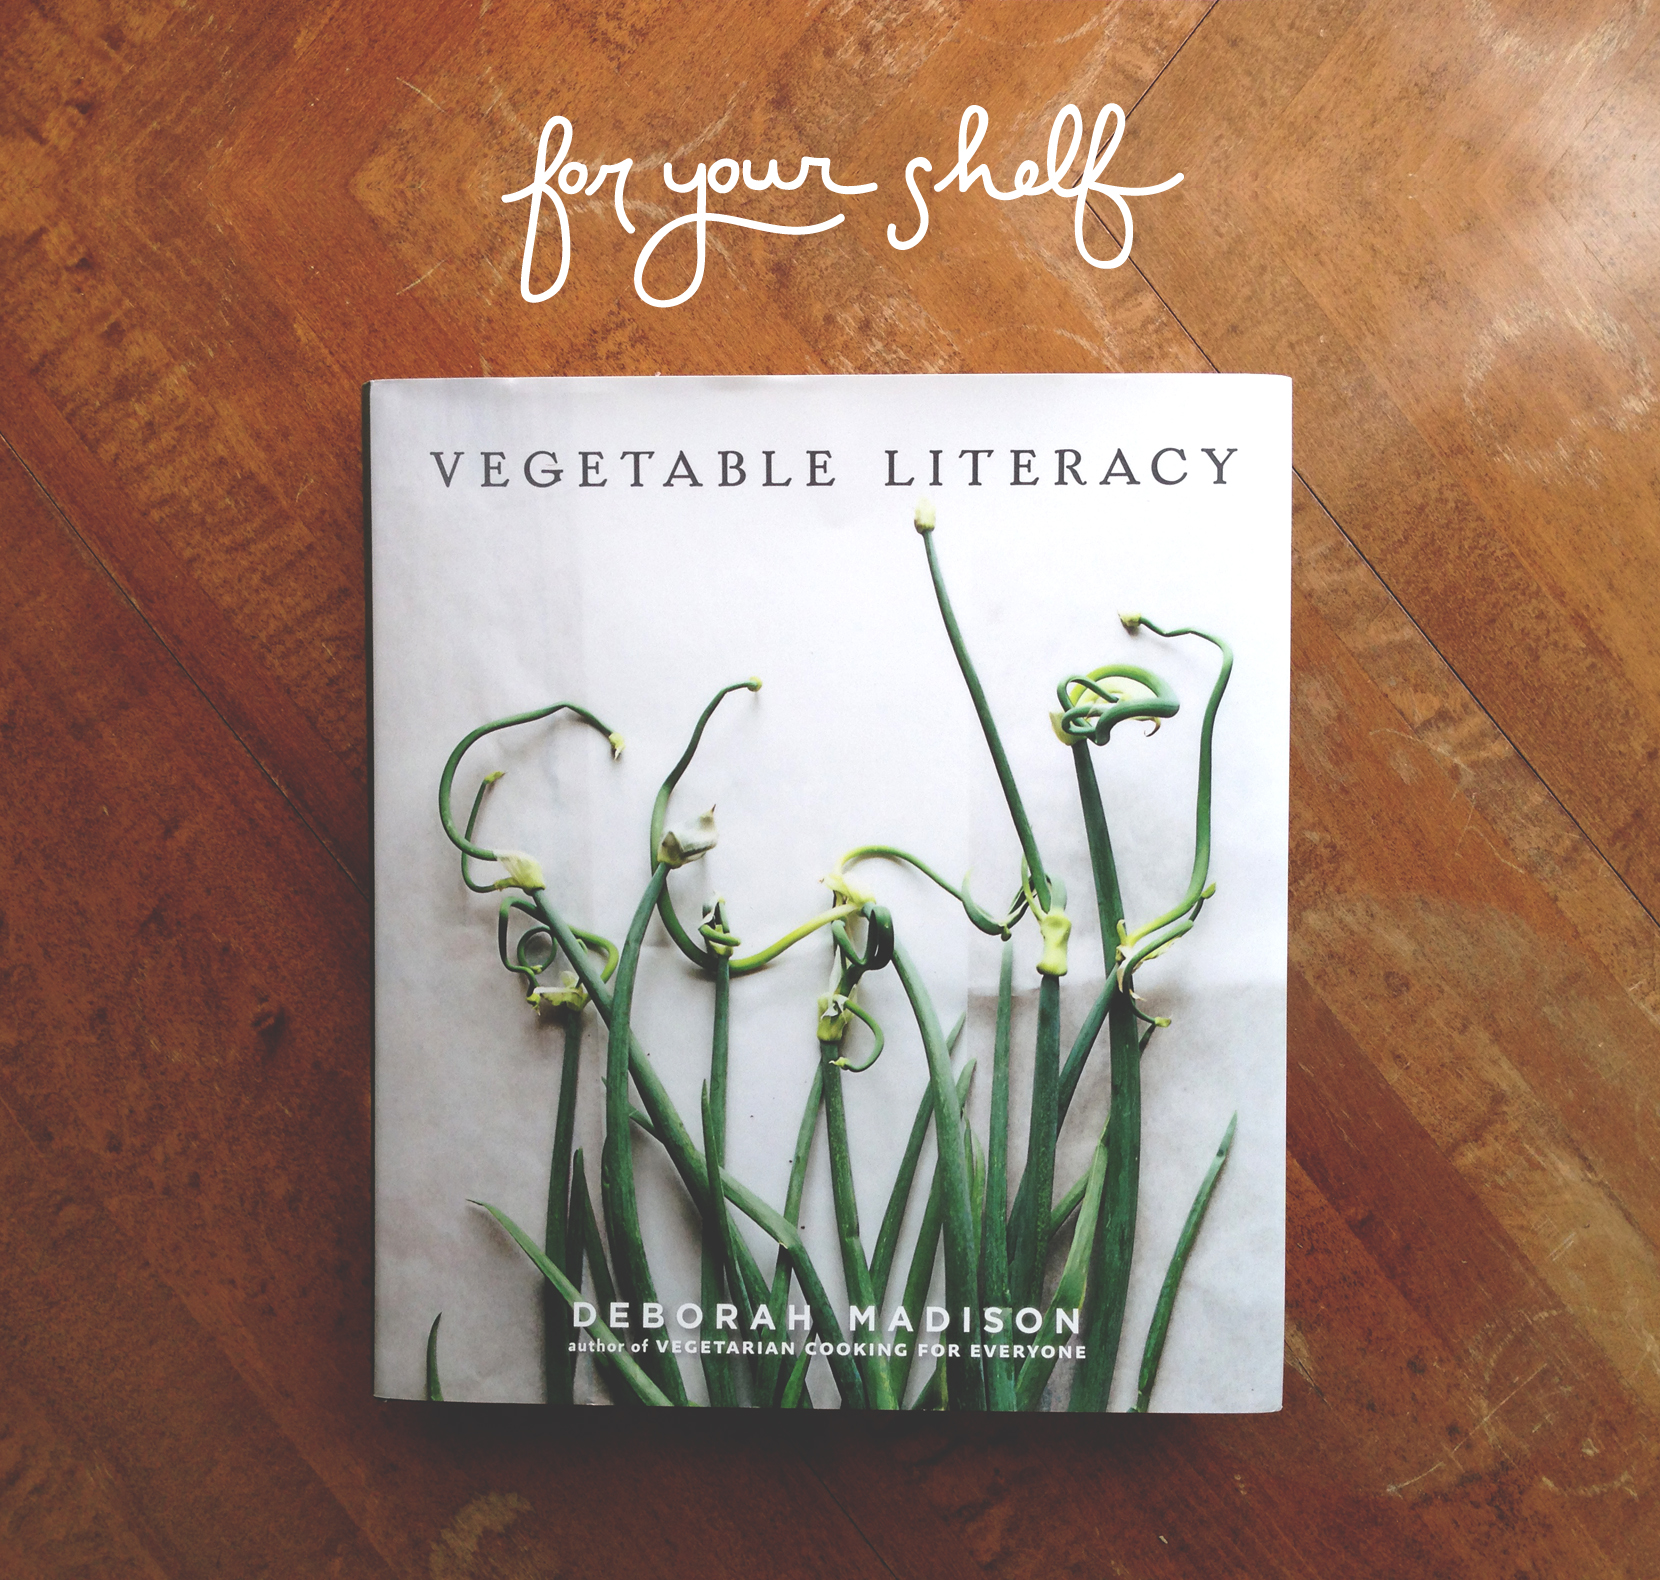 For your Shelf: Vegetable Literacy by Deborah Madison  |  The Fresh Exchange